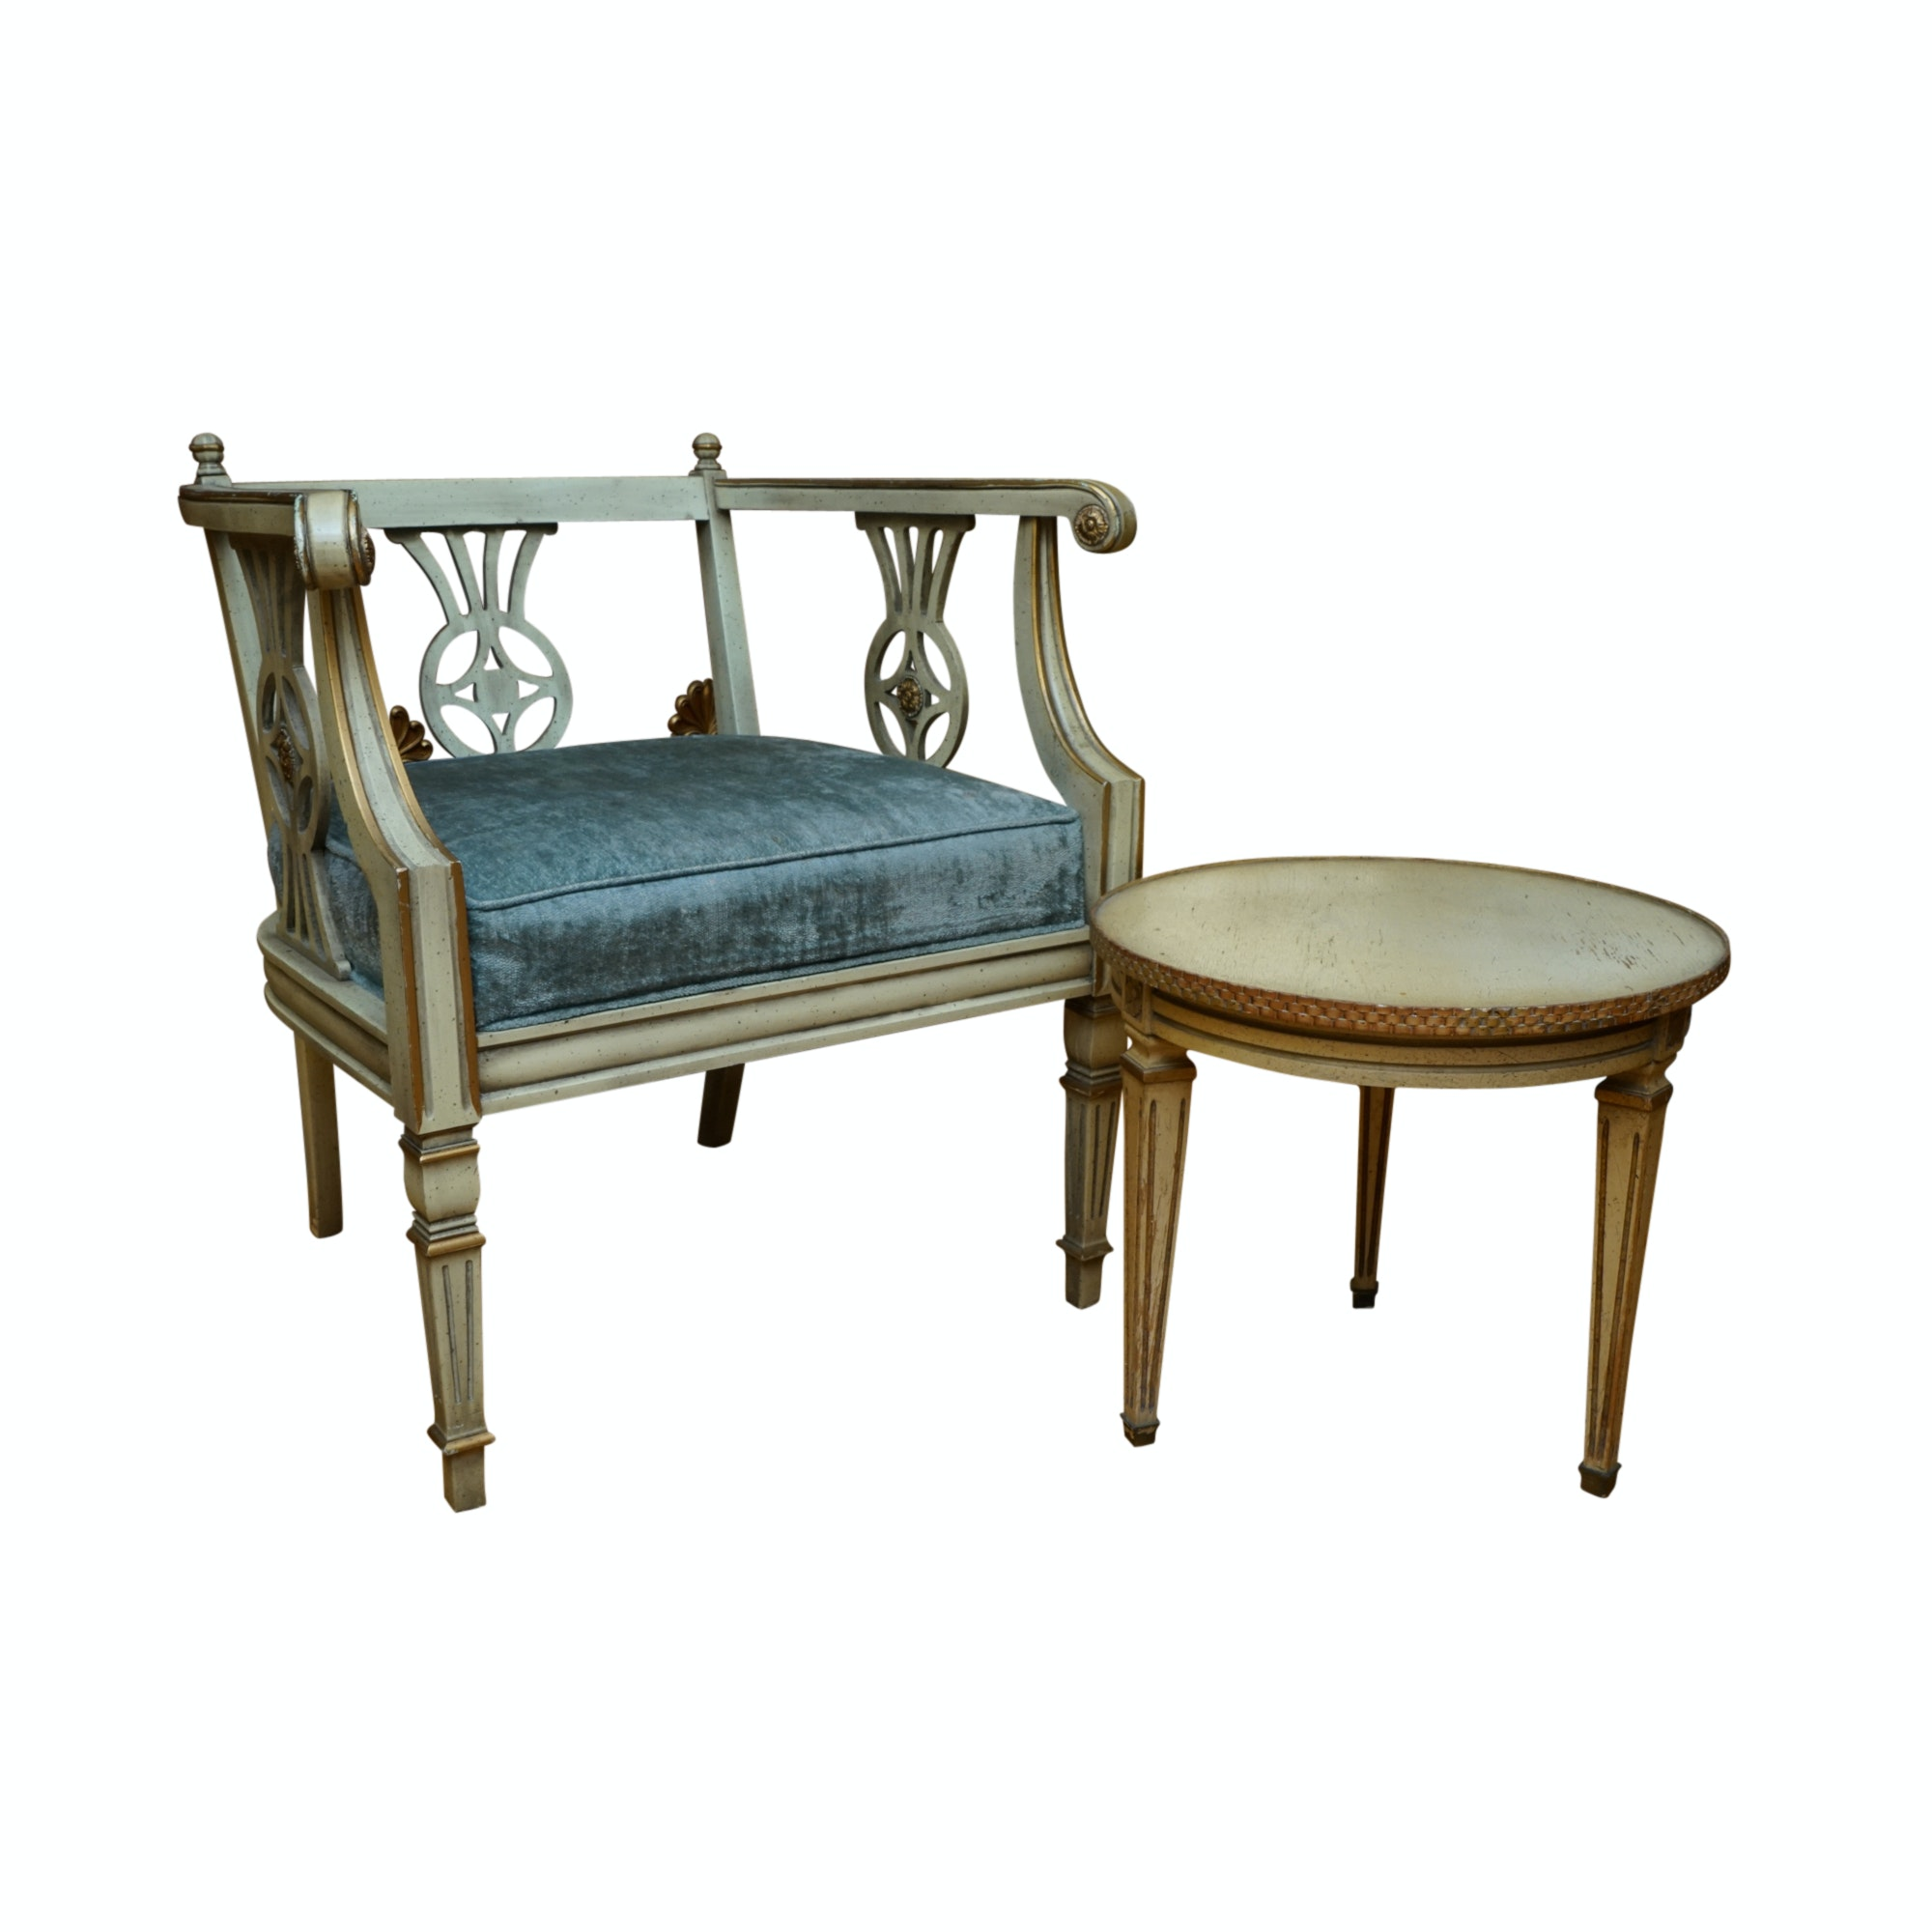 French Directoire Style Arm Chair and Side Table